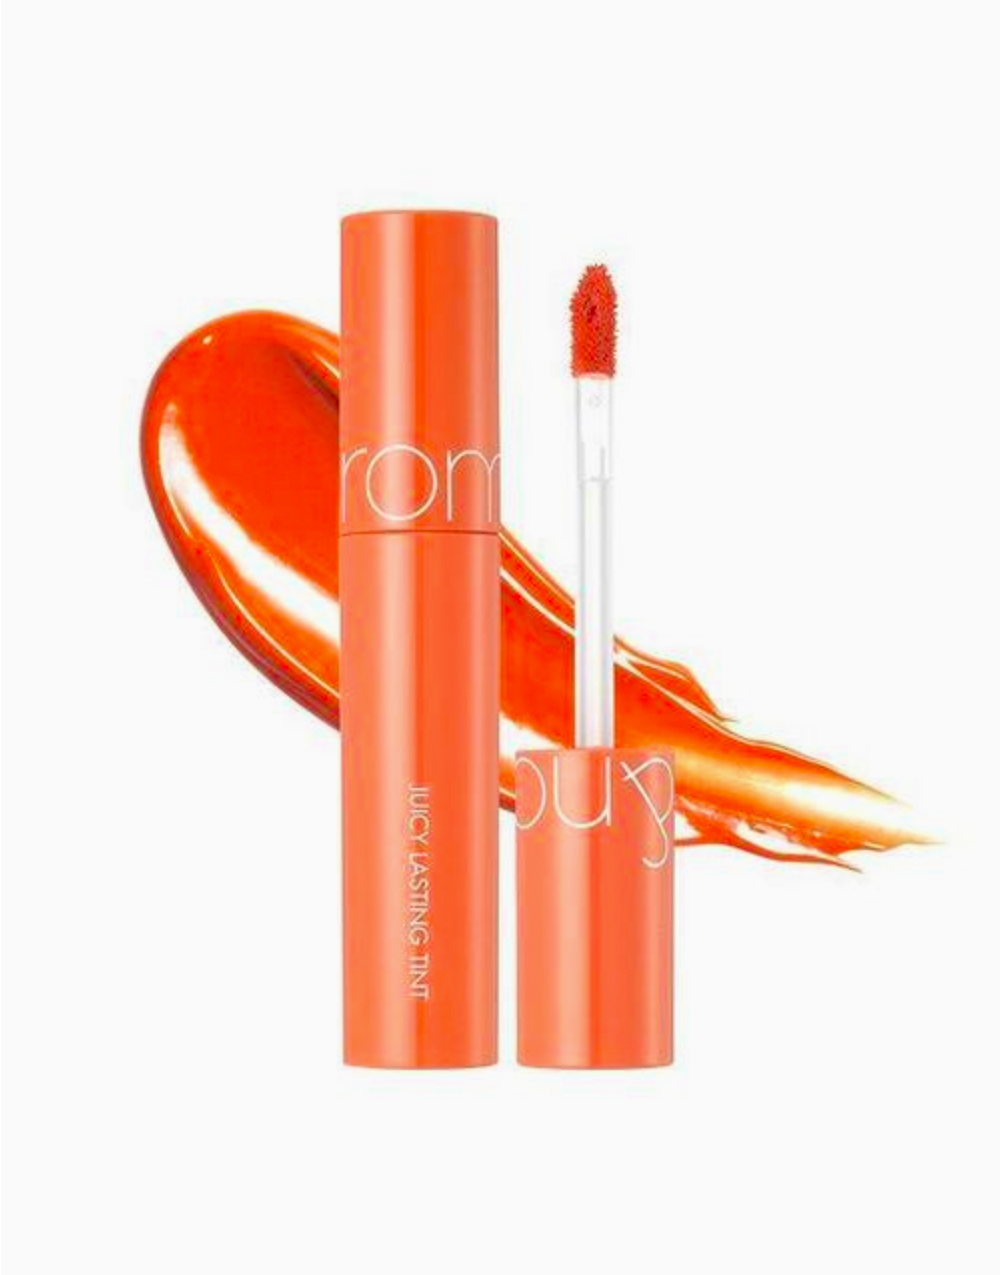 Juicy Lip Tint (New Packaging) by Rom&nd | Juicy Oh